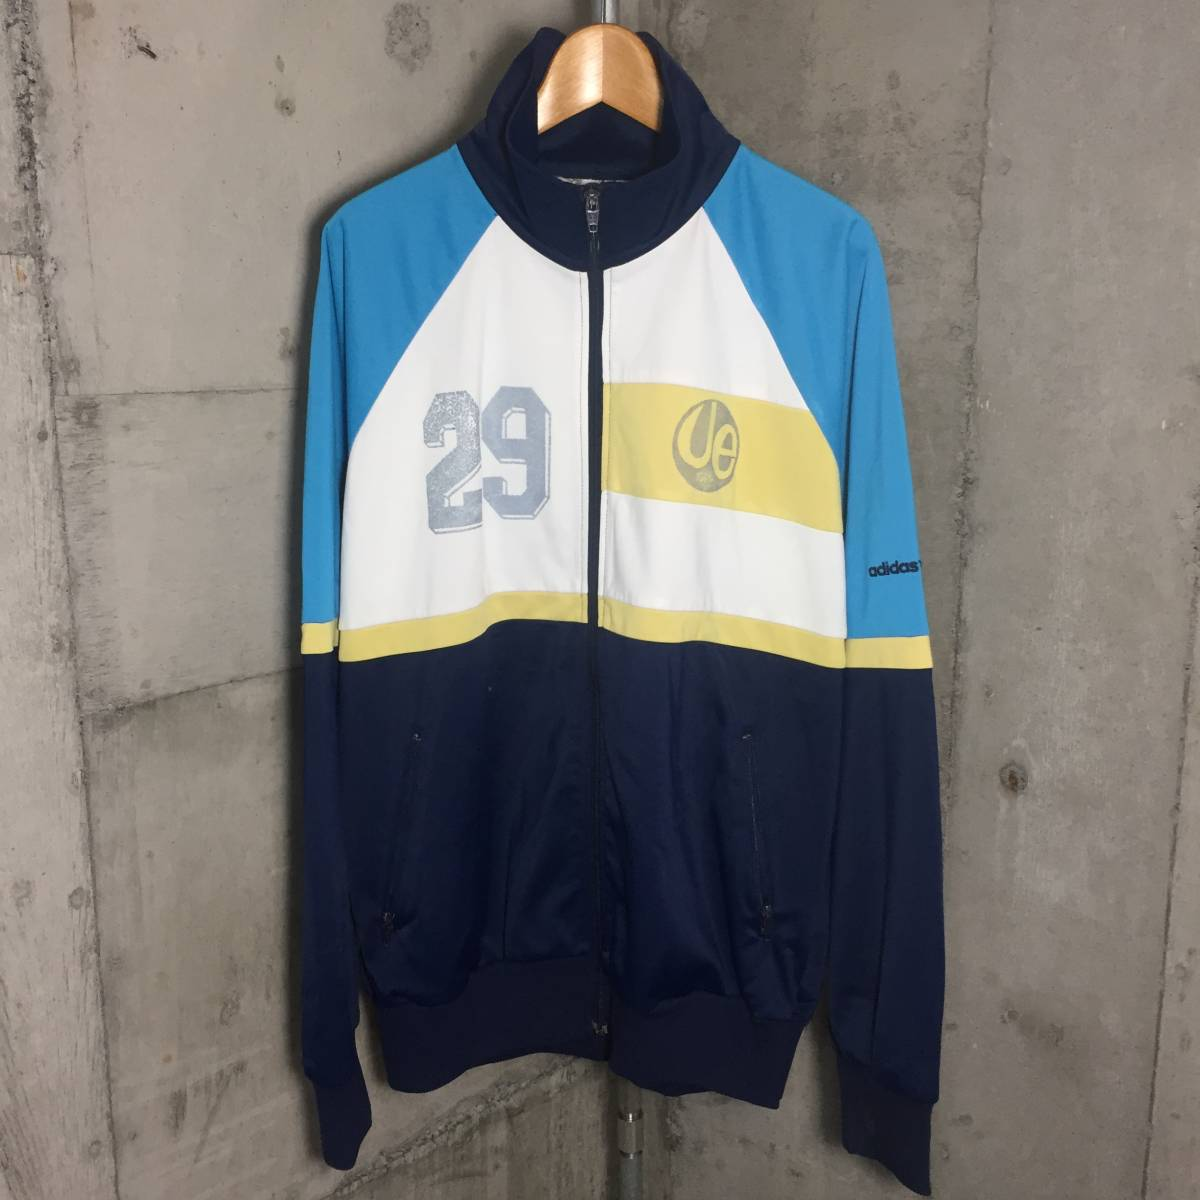 various design where can i buy unique design 80's U.S Used Clothing Old adidas Jersey Tops 80 period ...